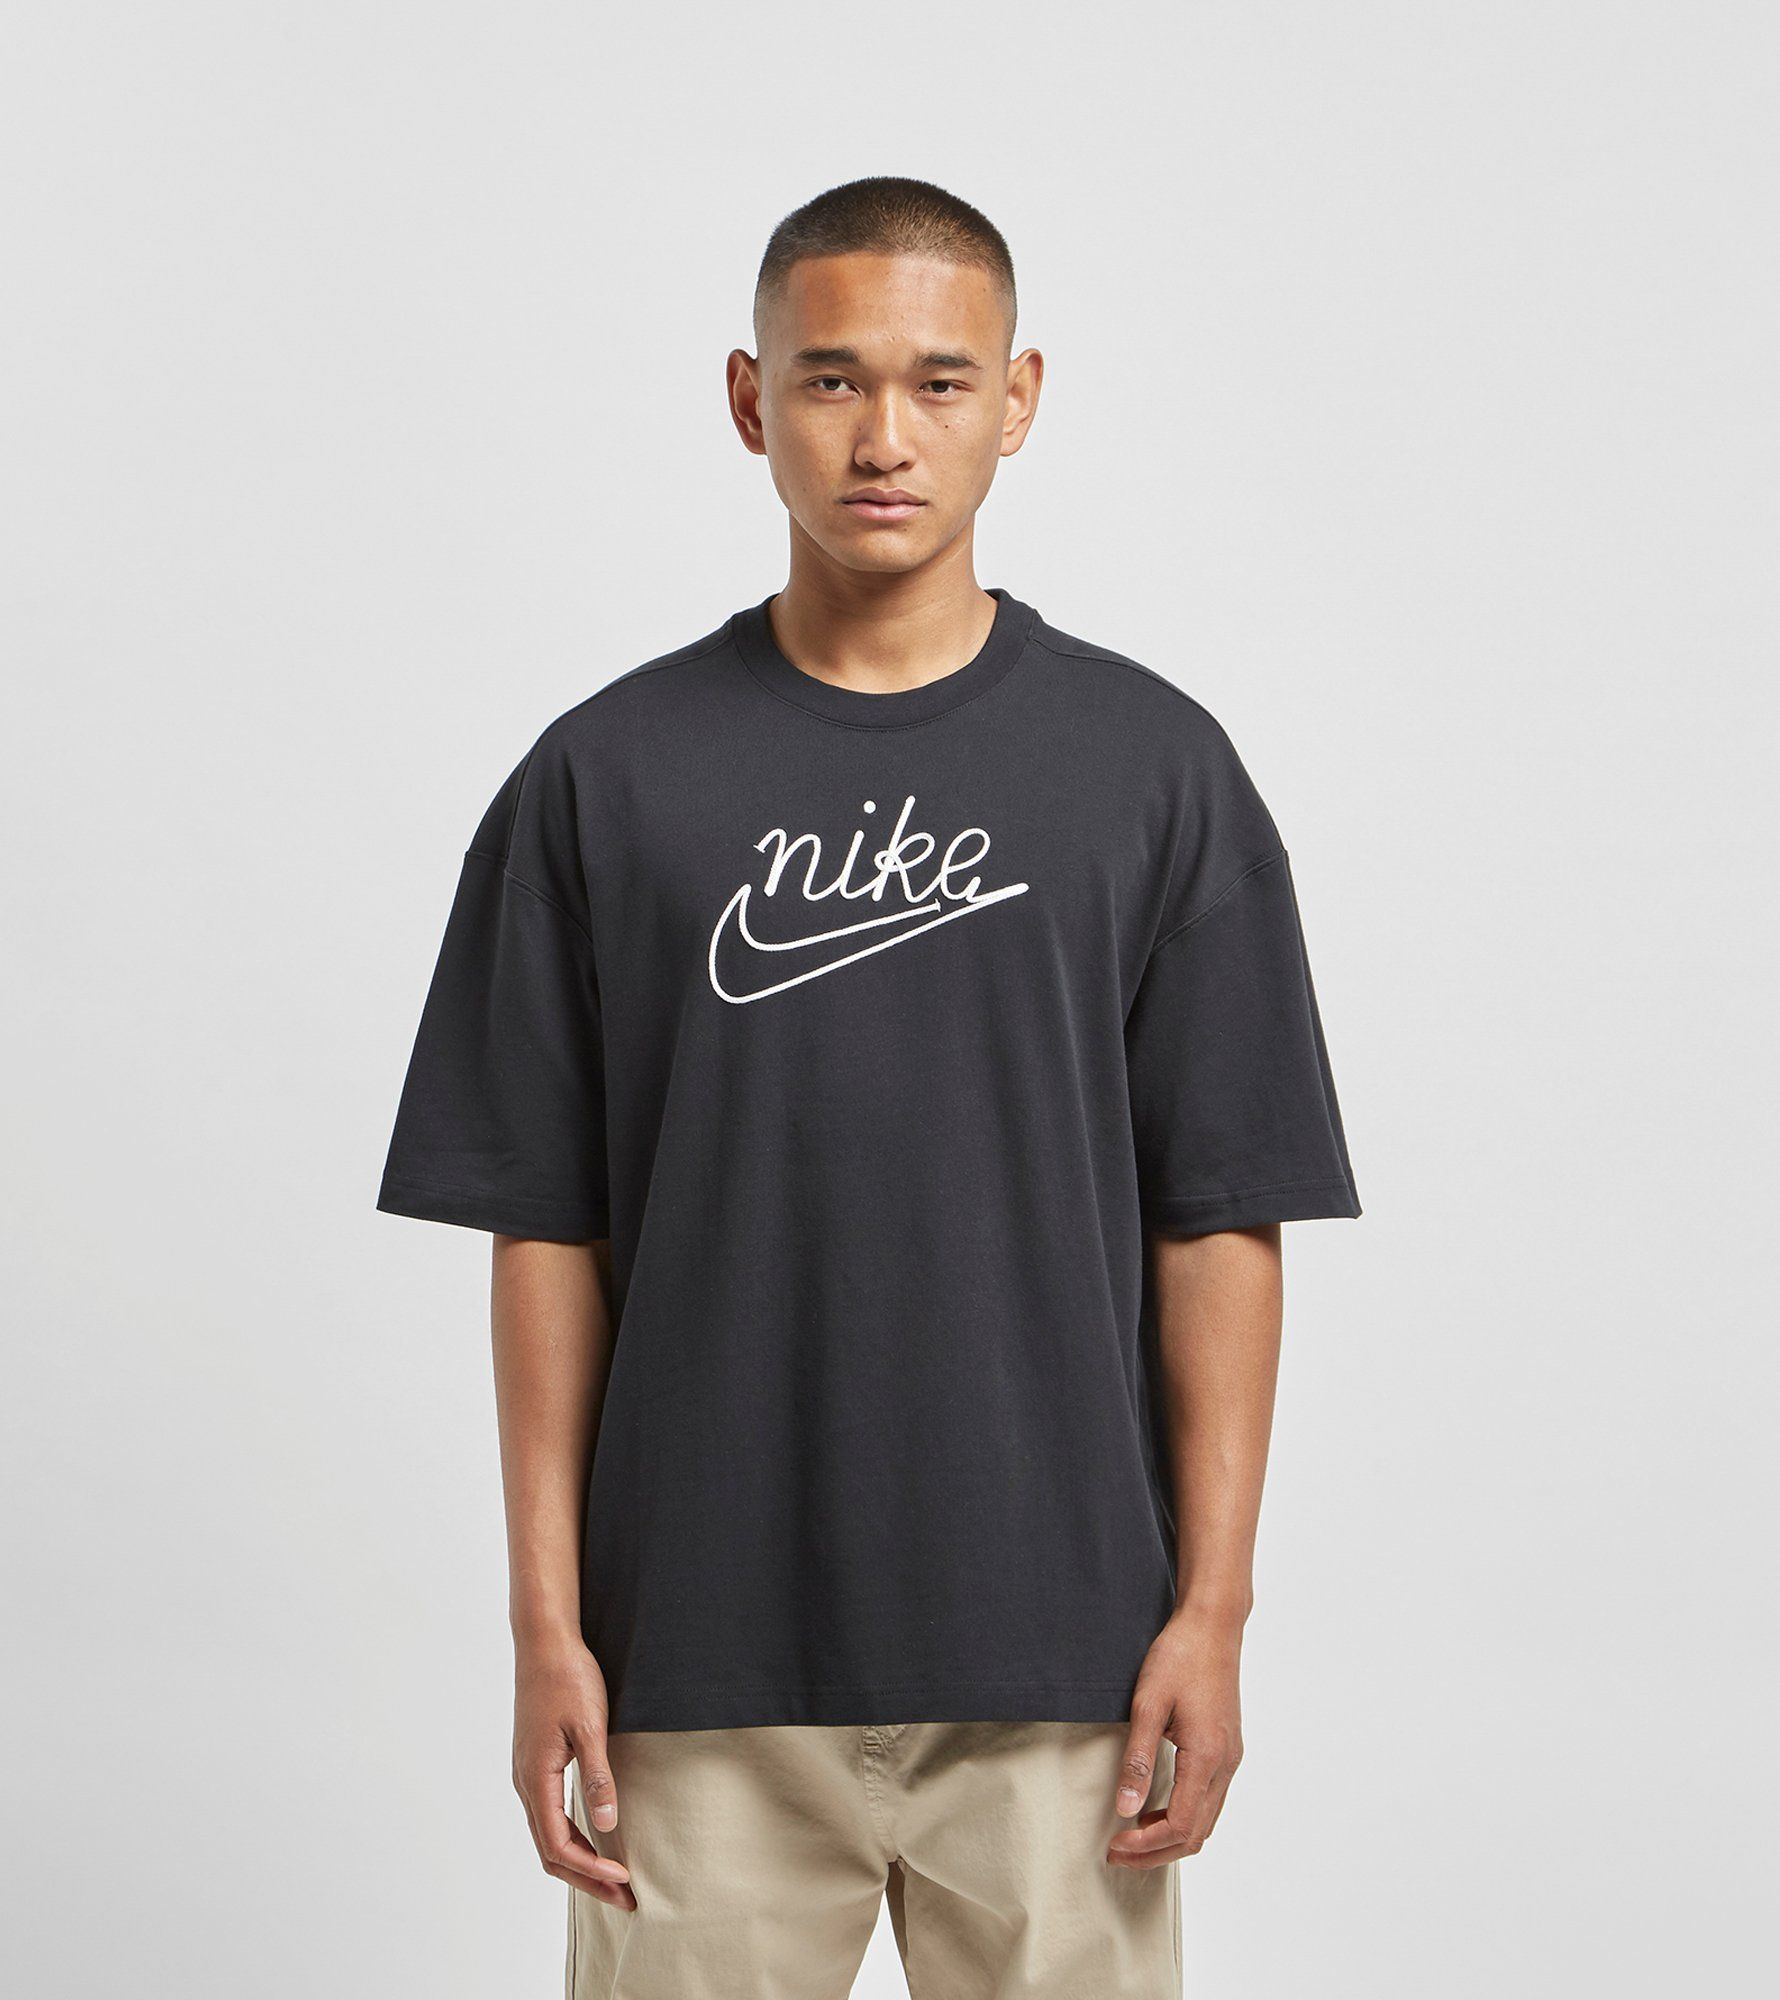 Nike Outline Logo Short Sleeve T-Shirt